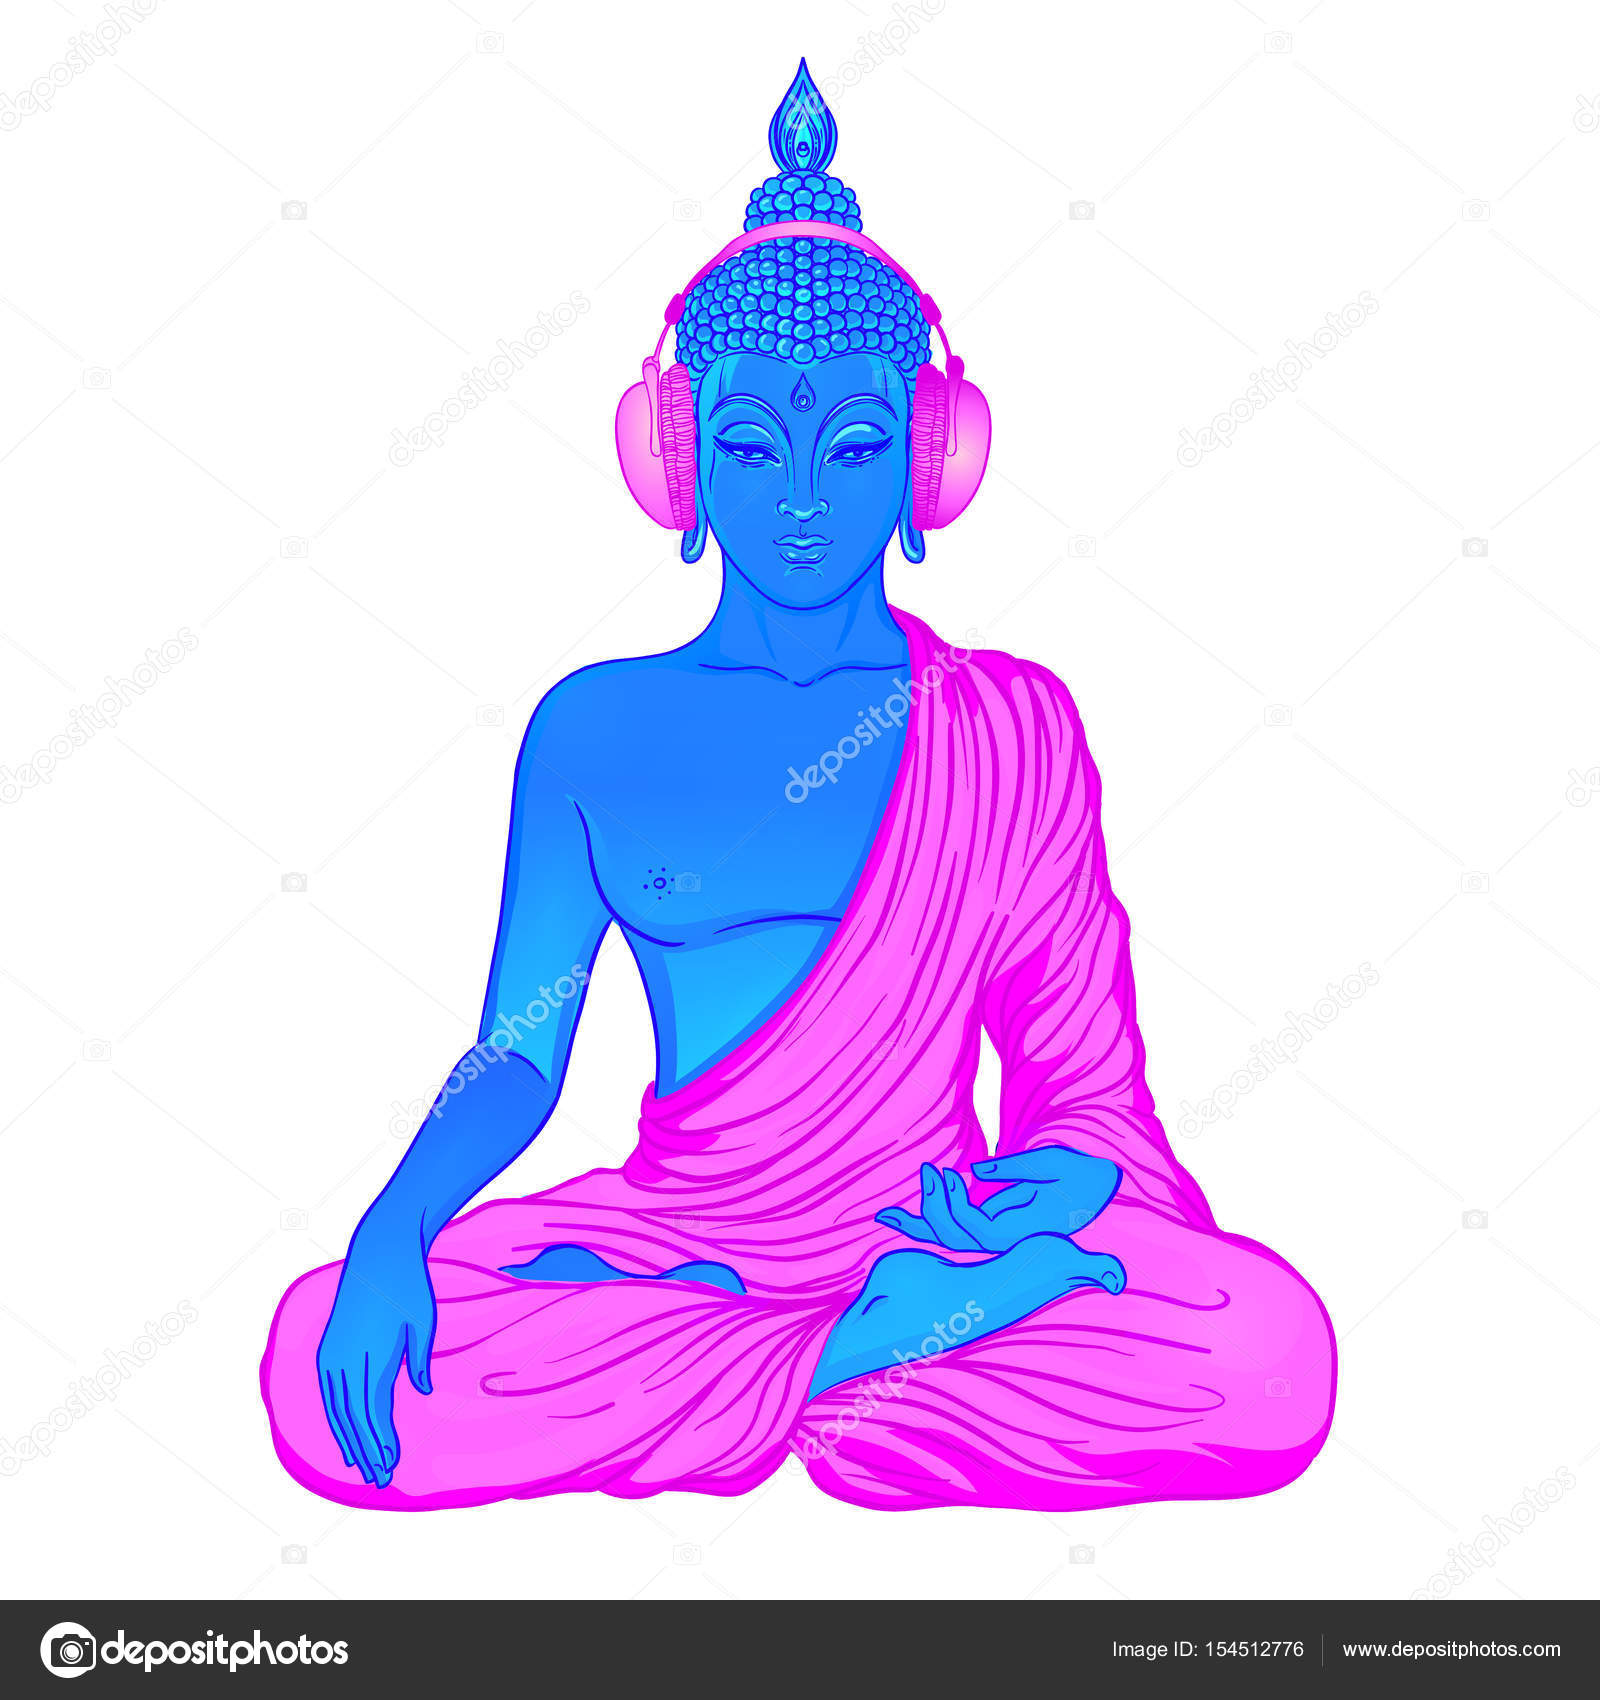 Modern Buddha listening to the music in headphones in neon